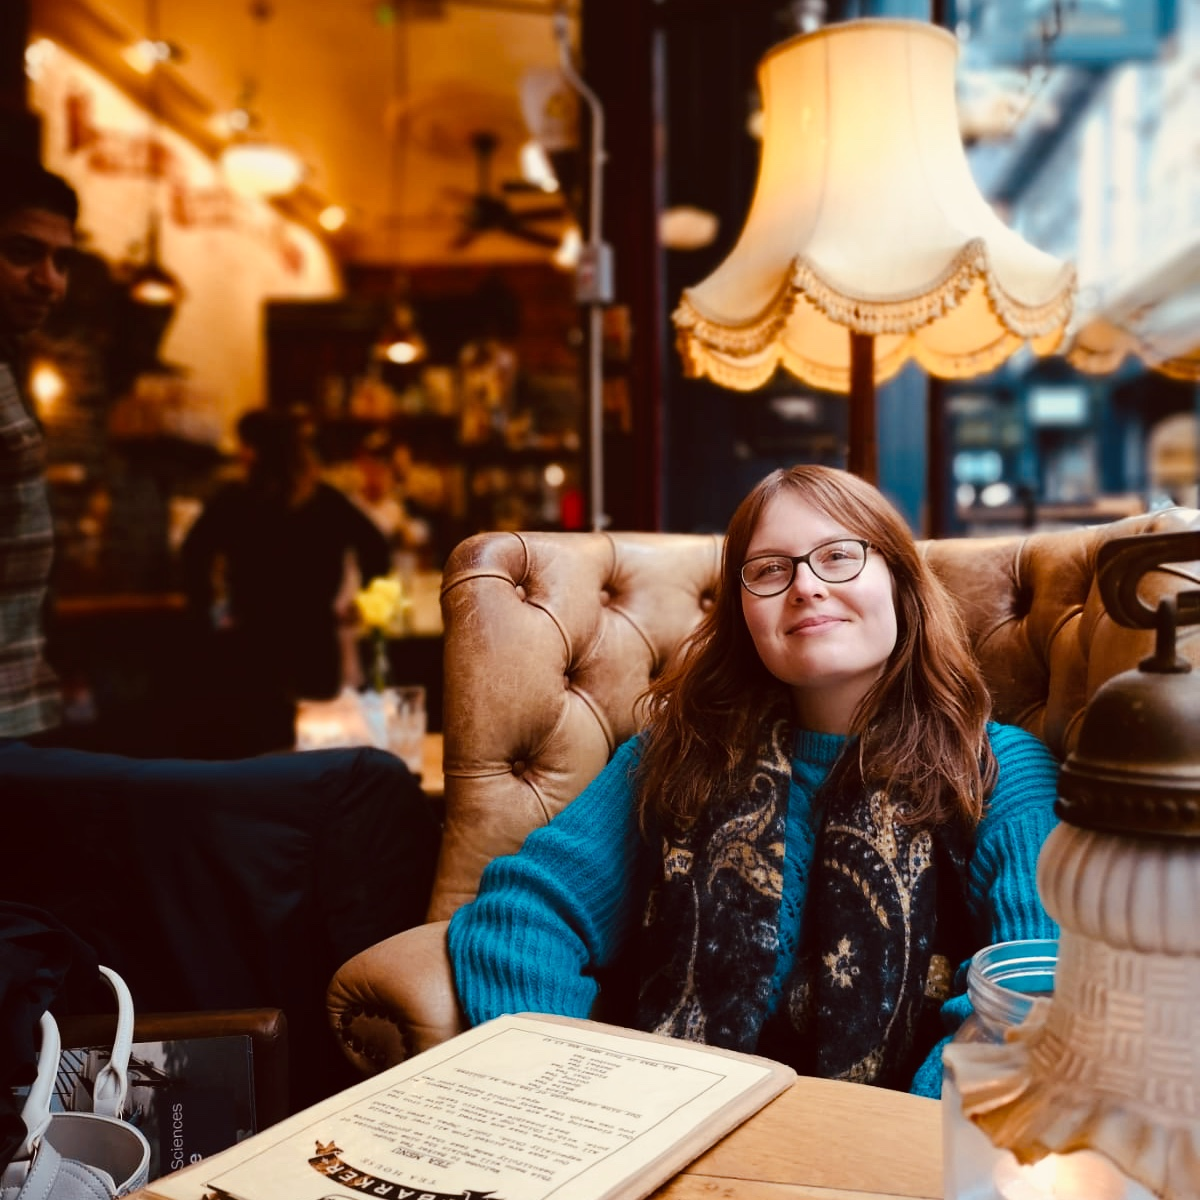 """The Author - Allie Mason is starting out on her journey to become an author and public speaker, empowering young people to overcome adversity in order to achieve academic and professional success. After graduating and dabbling in the 9 – 5, Allie will be returning to higher education in the autumn to study for a masters degree at the University of Oxford. Her inner introvert is rejoicing at the thought of spending more time with books than people!When she is not writing or daydreaming about the future, Allie loves to be outside in nature, preferably with a dog or two and her boyfriend by her side. If the weather is unfavourable, you can find her cocooned in a blanket with a hot chocolate and a good book. Her favourite quote is from Little Women: """"I am not afraid of storms, for I am learning how to sail my ship"""".Instagram: whensouthmetnorthLinkedIn: www.linkedin.com/in/allie-mason"""